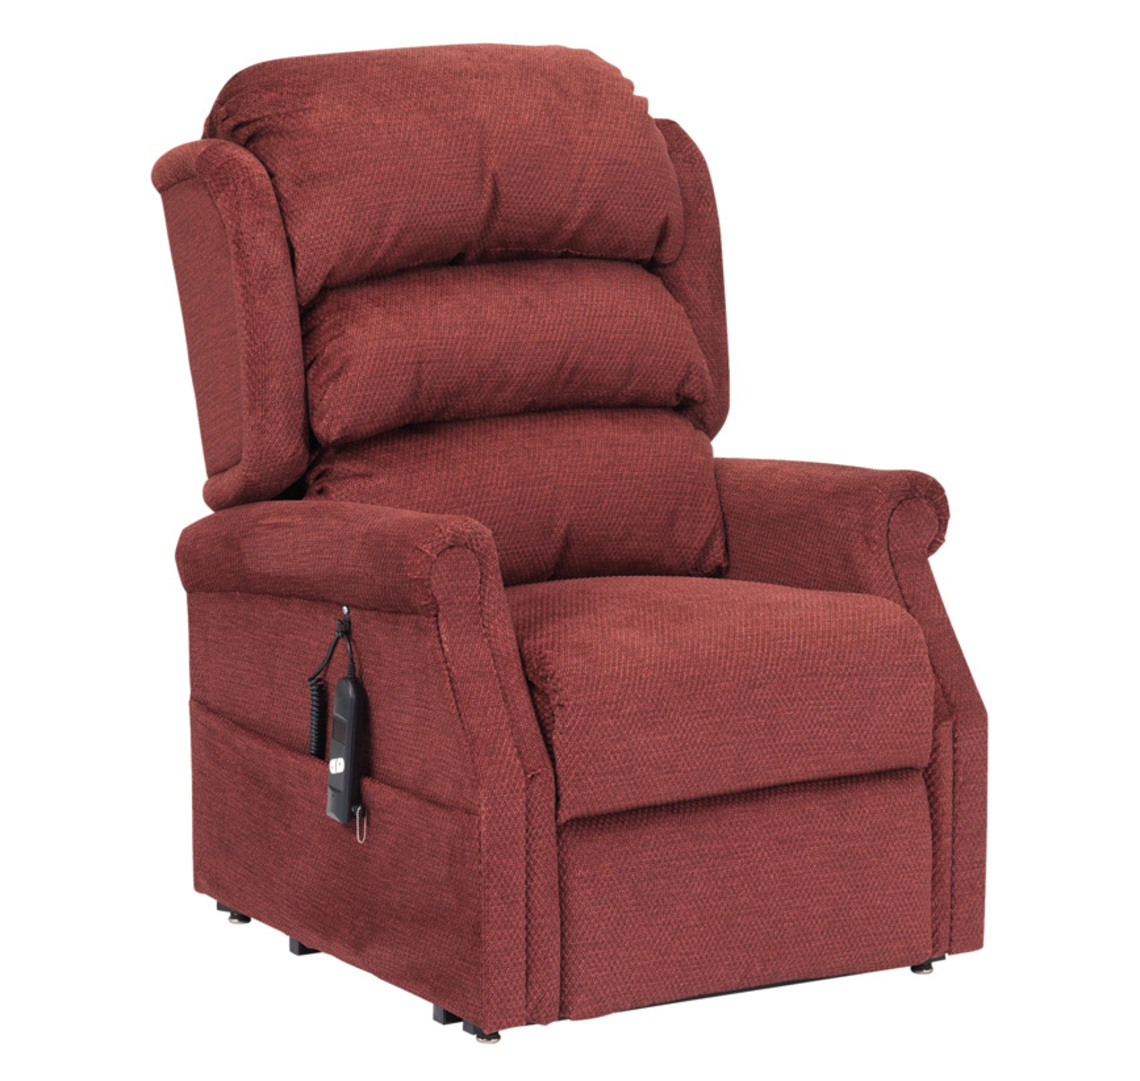 furniture | rise-and-recliners | Washington Riser Recliner